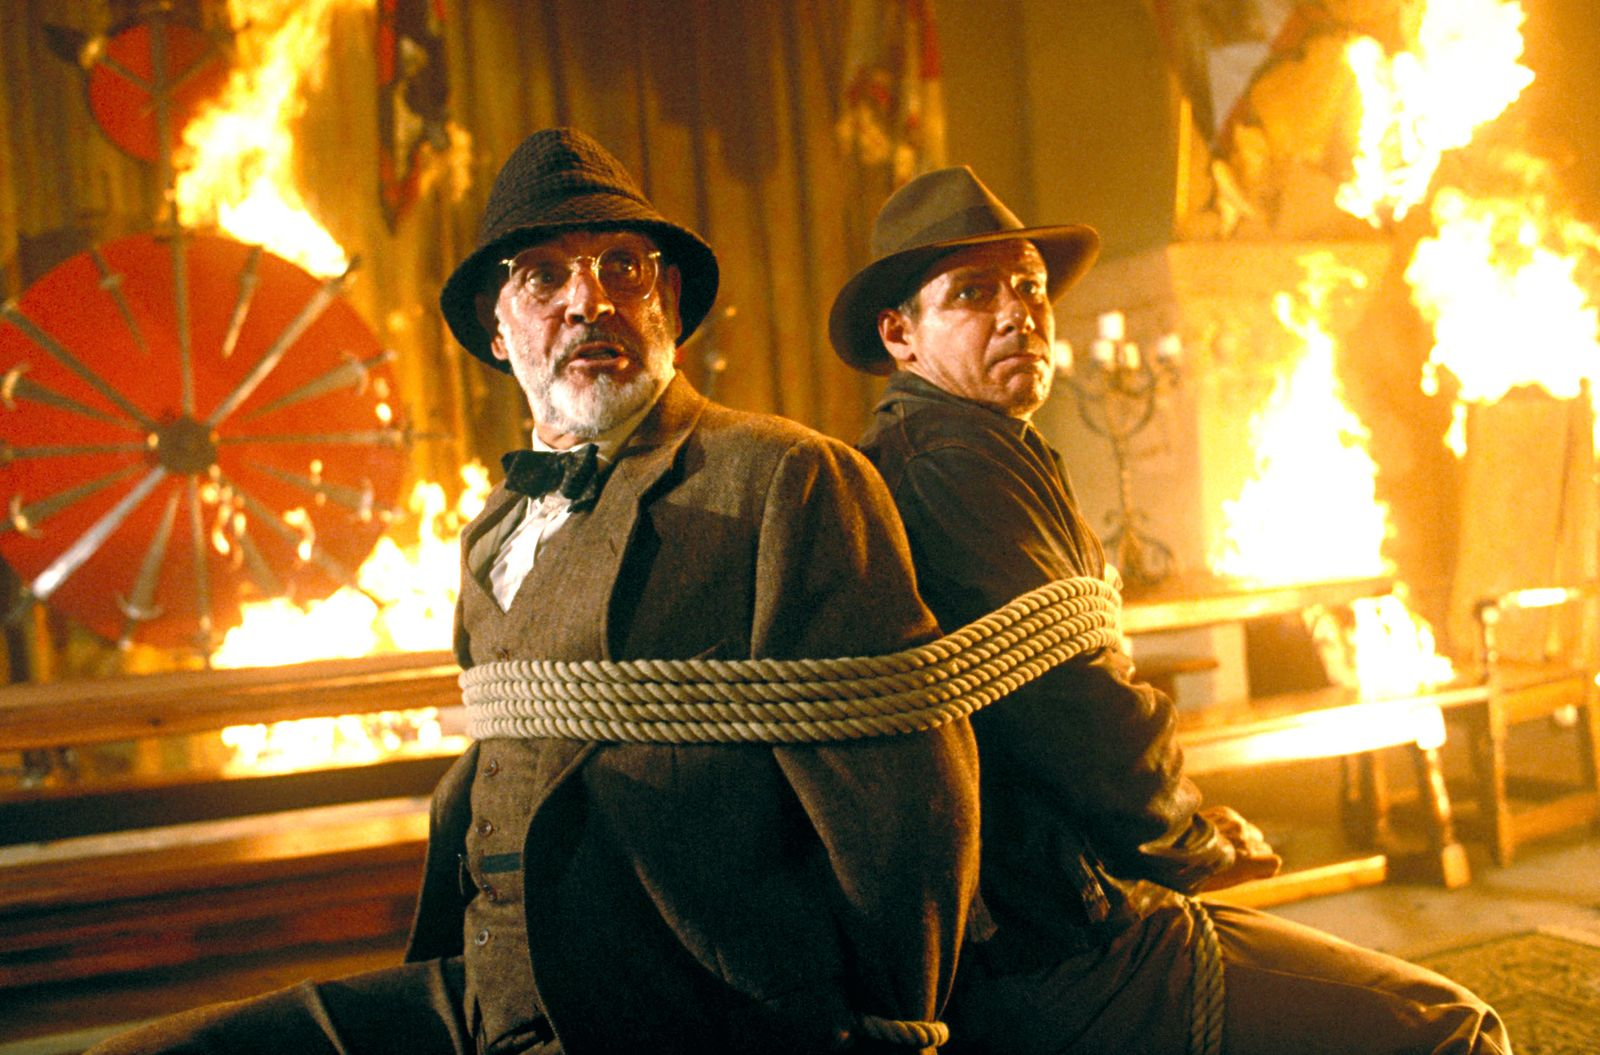 INDIANA JONES AND THE LAST CRUSADE, Sean Connery, Harrison Ford, 1989, (c) Paramount/courtesy Everet